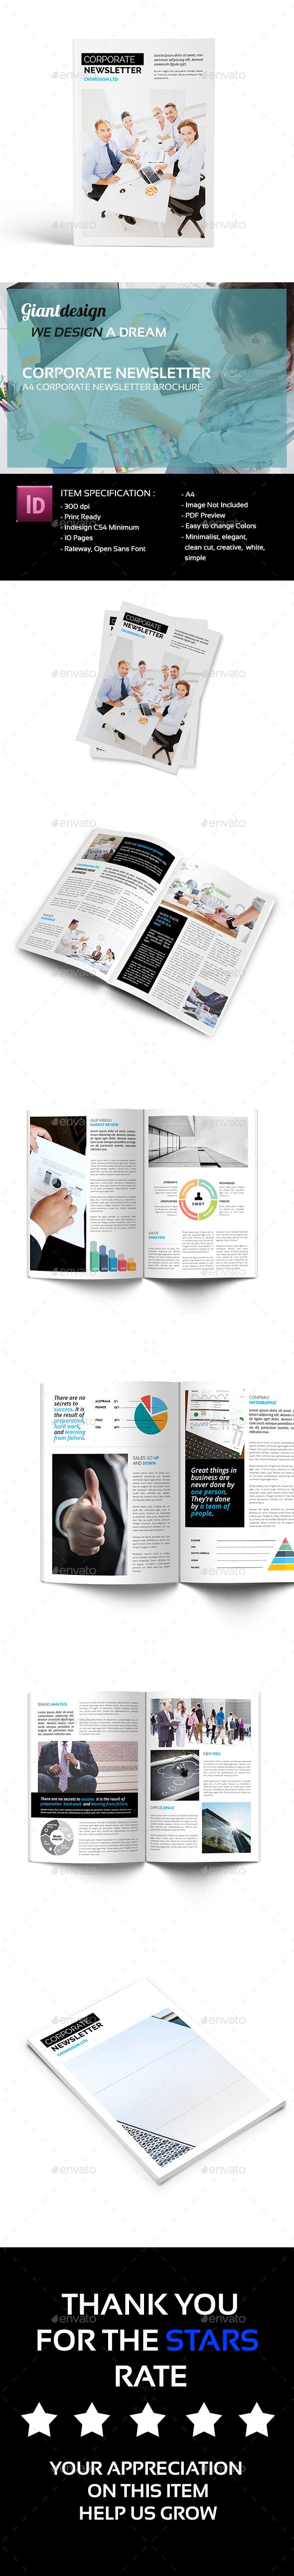 Layout Corporate Newsletter Templates